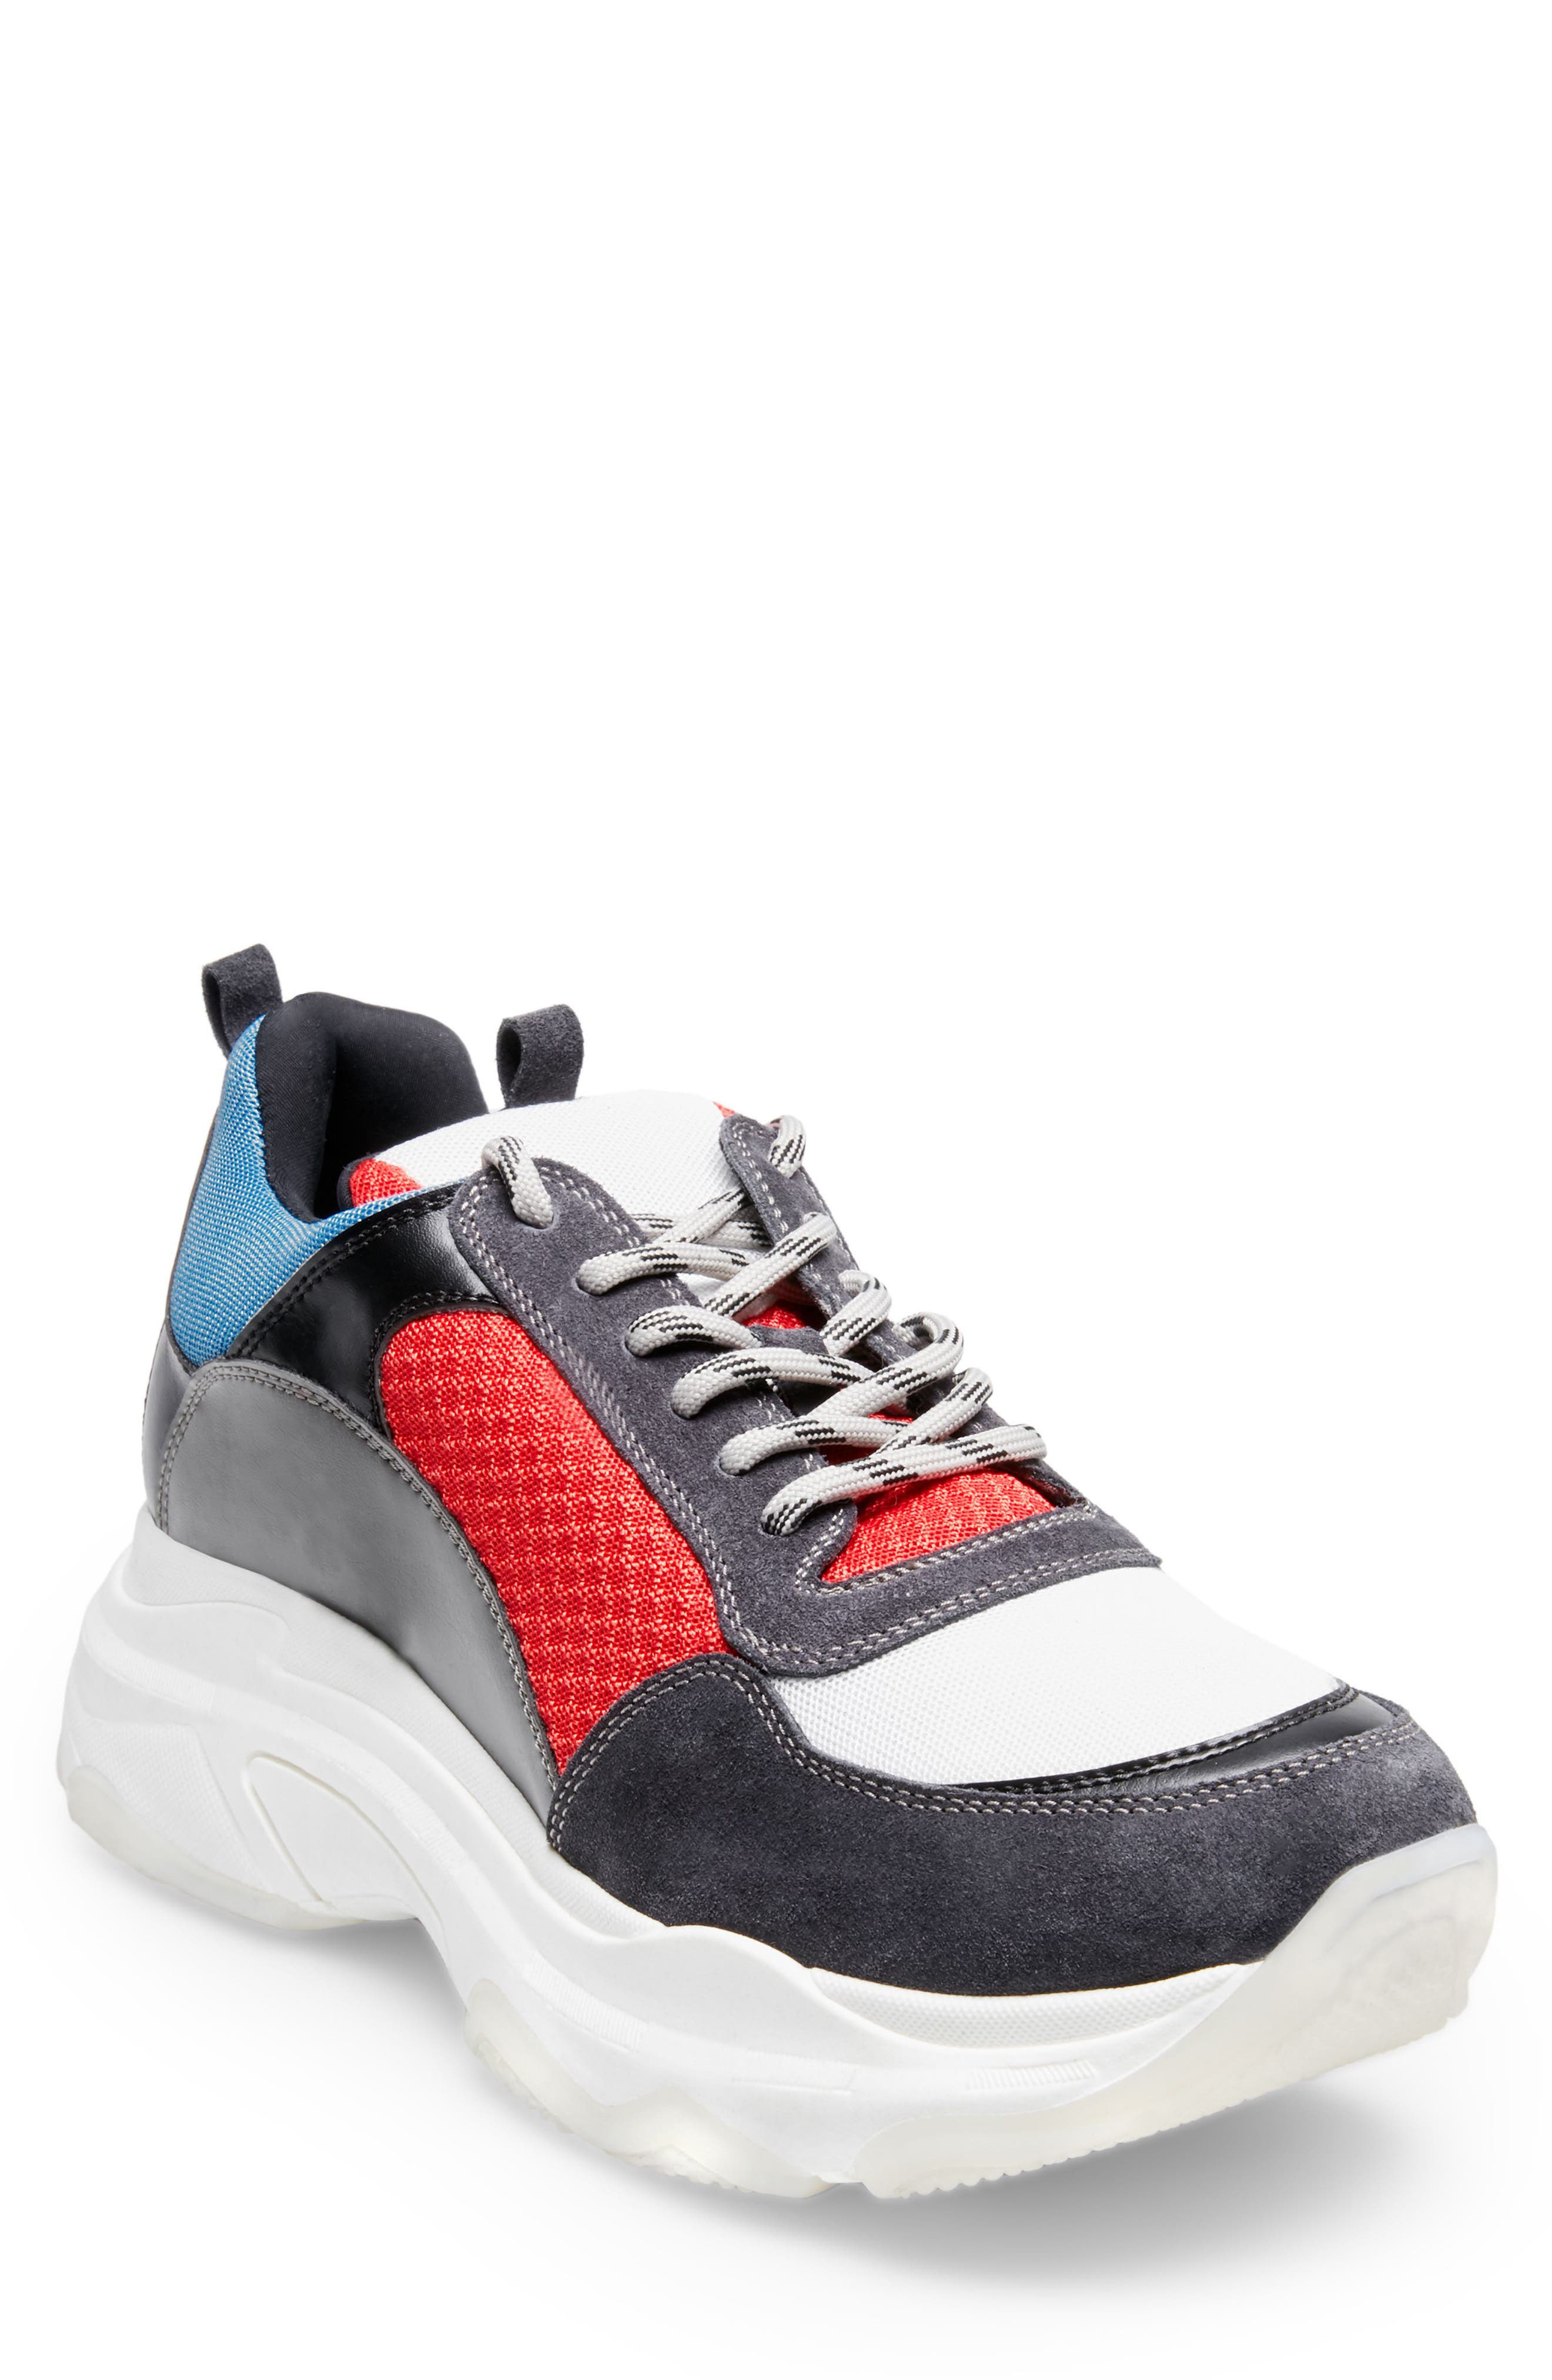 Russell Platform Sneaker,                             Main thumbnail 1, color,                             MULTI LEATHER